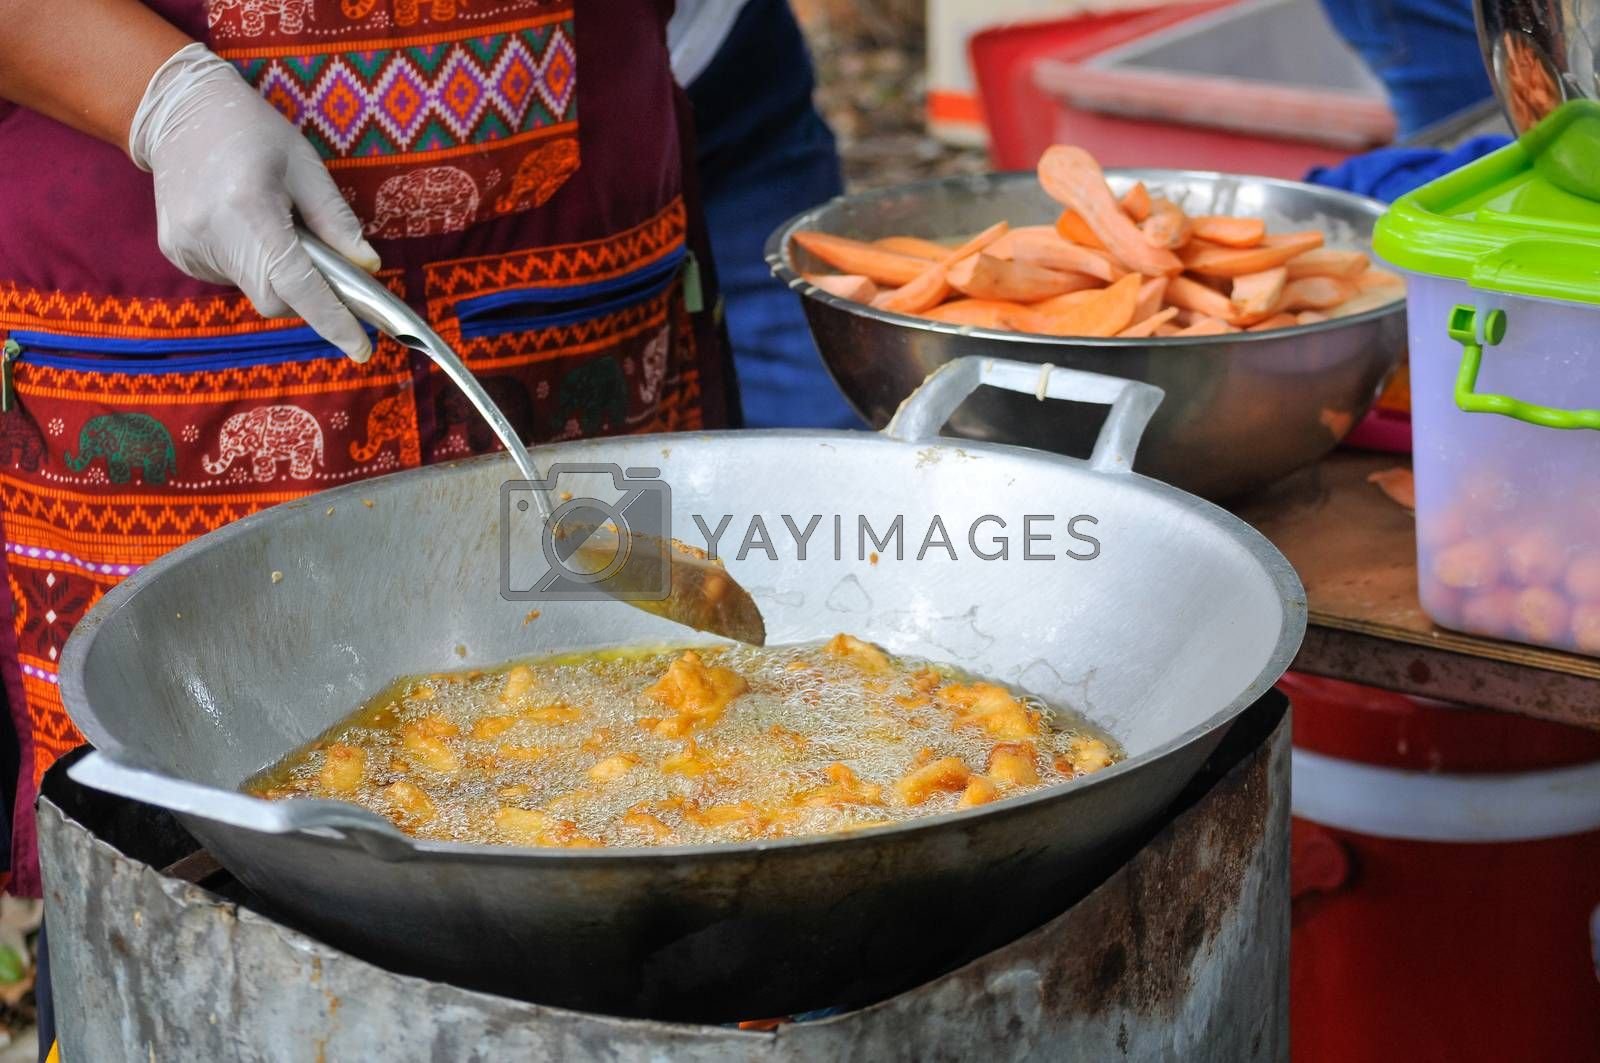 Sweet Potatoes being fried in Frying Pan with Heat Palm Oil, Fried Sweet Potatoes is Thailand Street Food or Thai Snack.